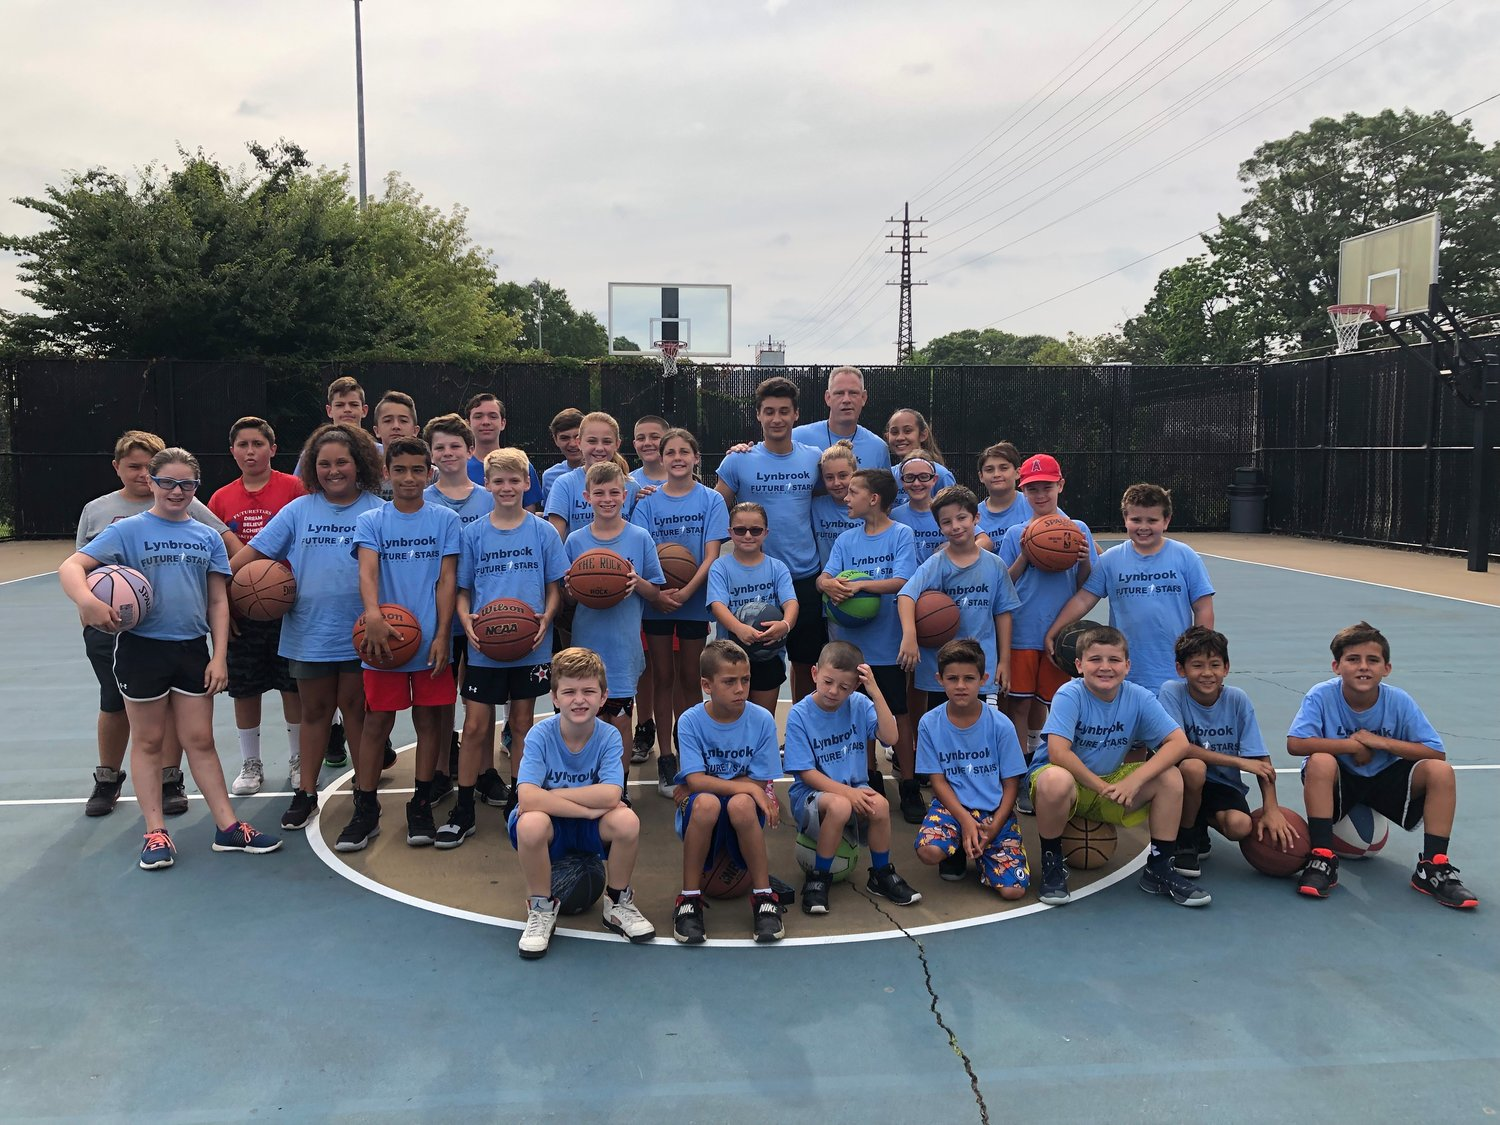 The Lynbrook Future Stars annual summer camp was held in Greis Park from July 29 through Aug. 2.